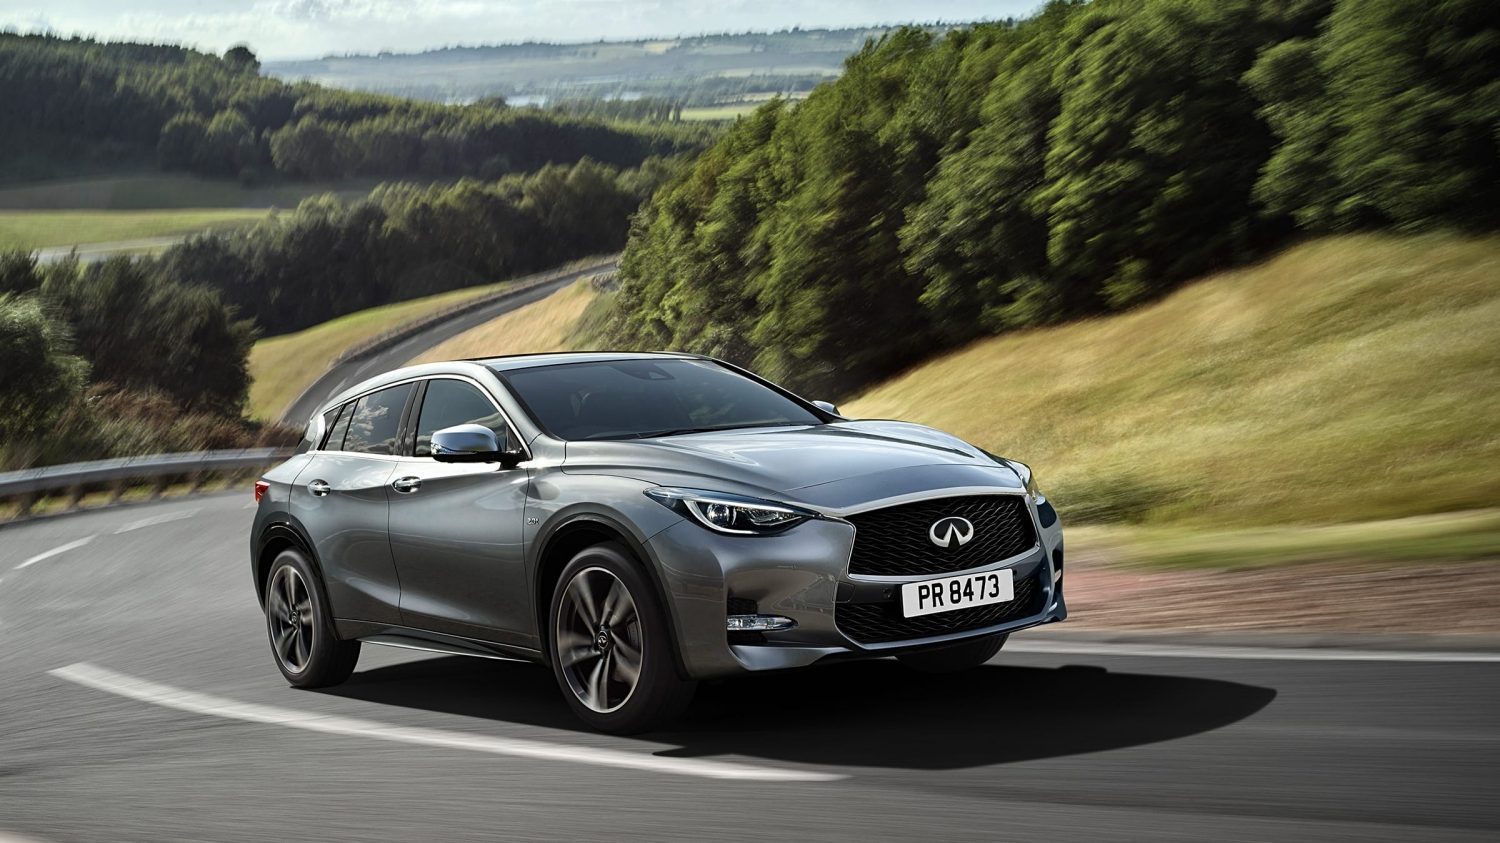 2018 INFINITI Q30 Crossover Performance